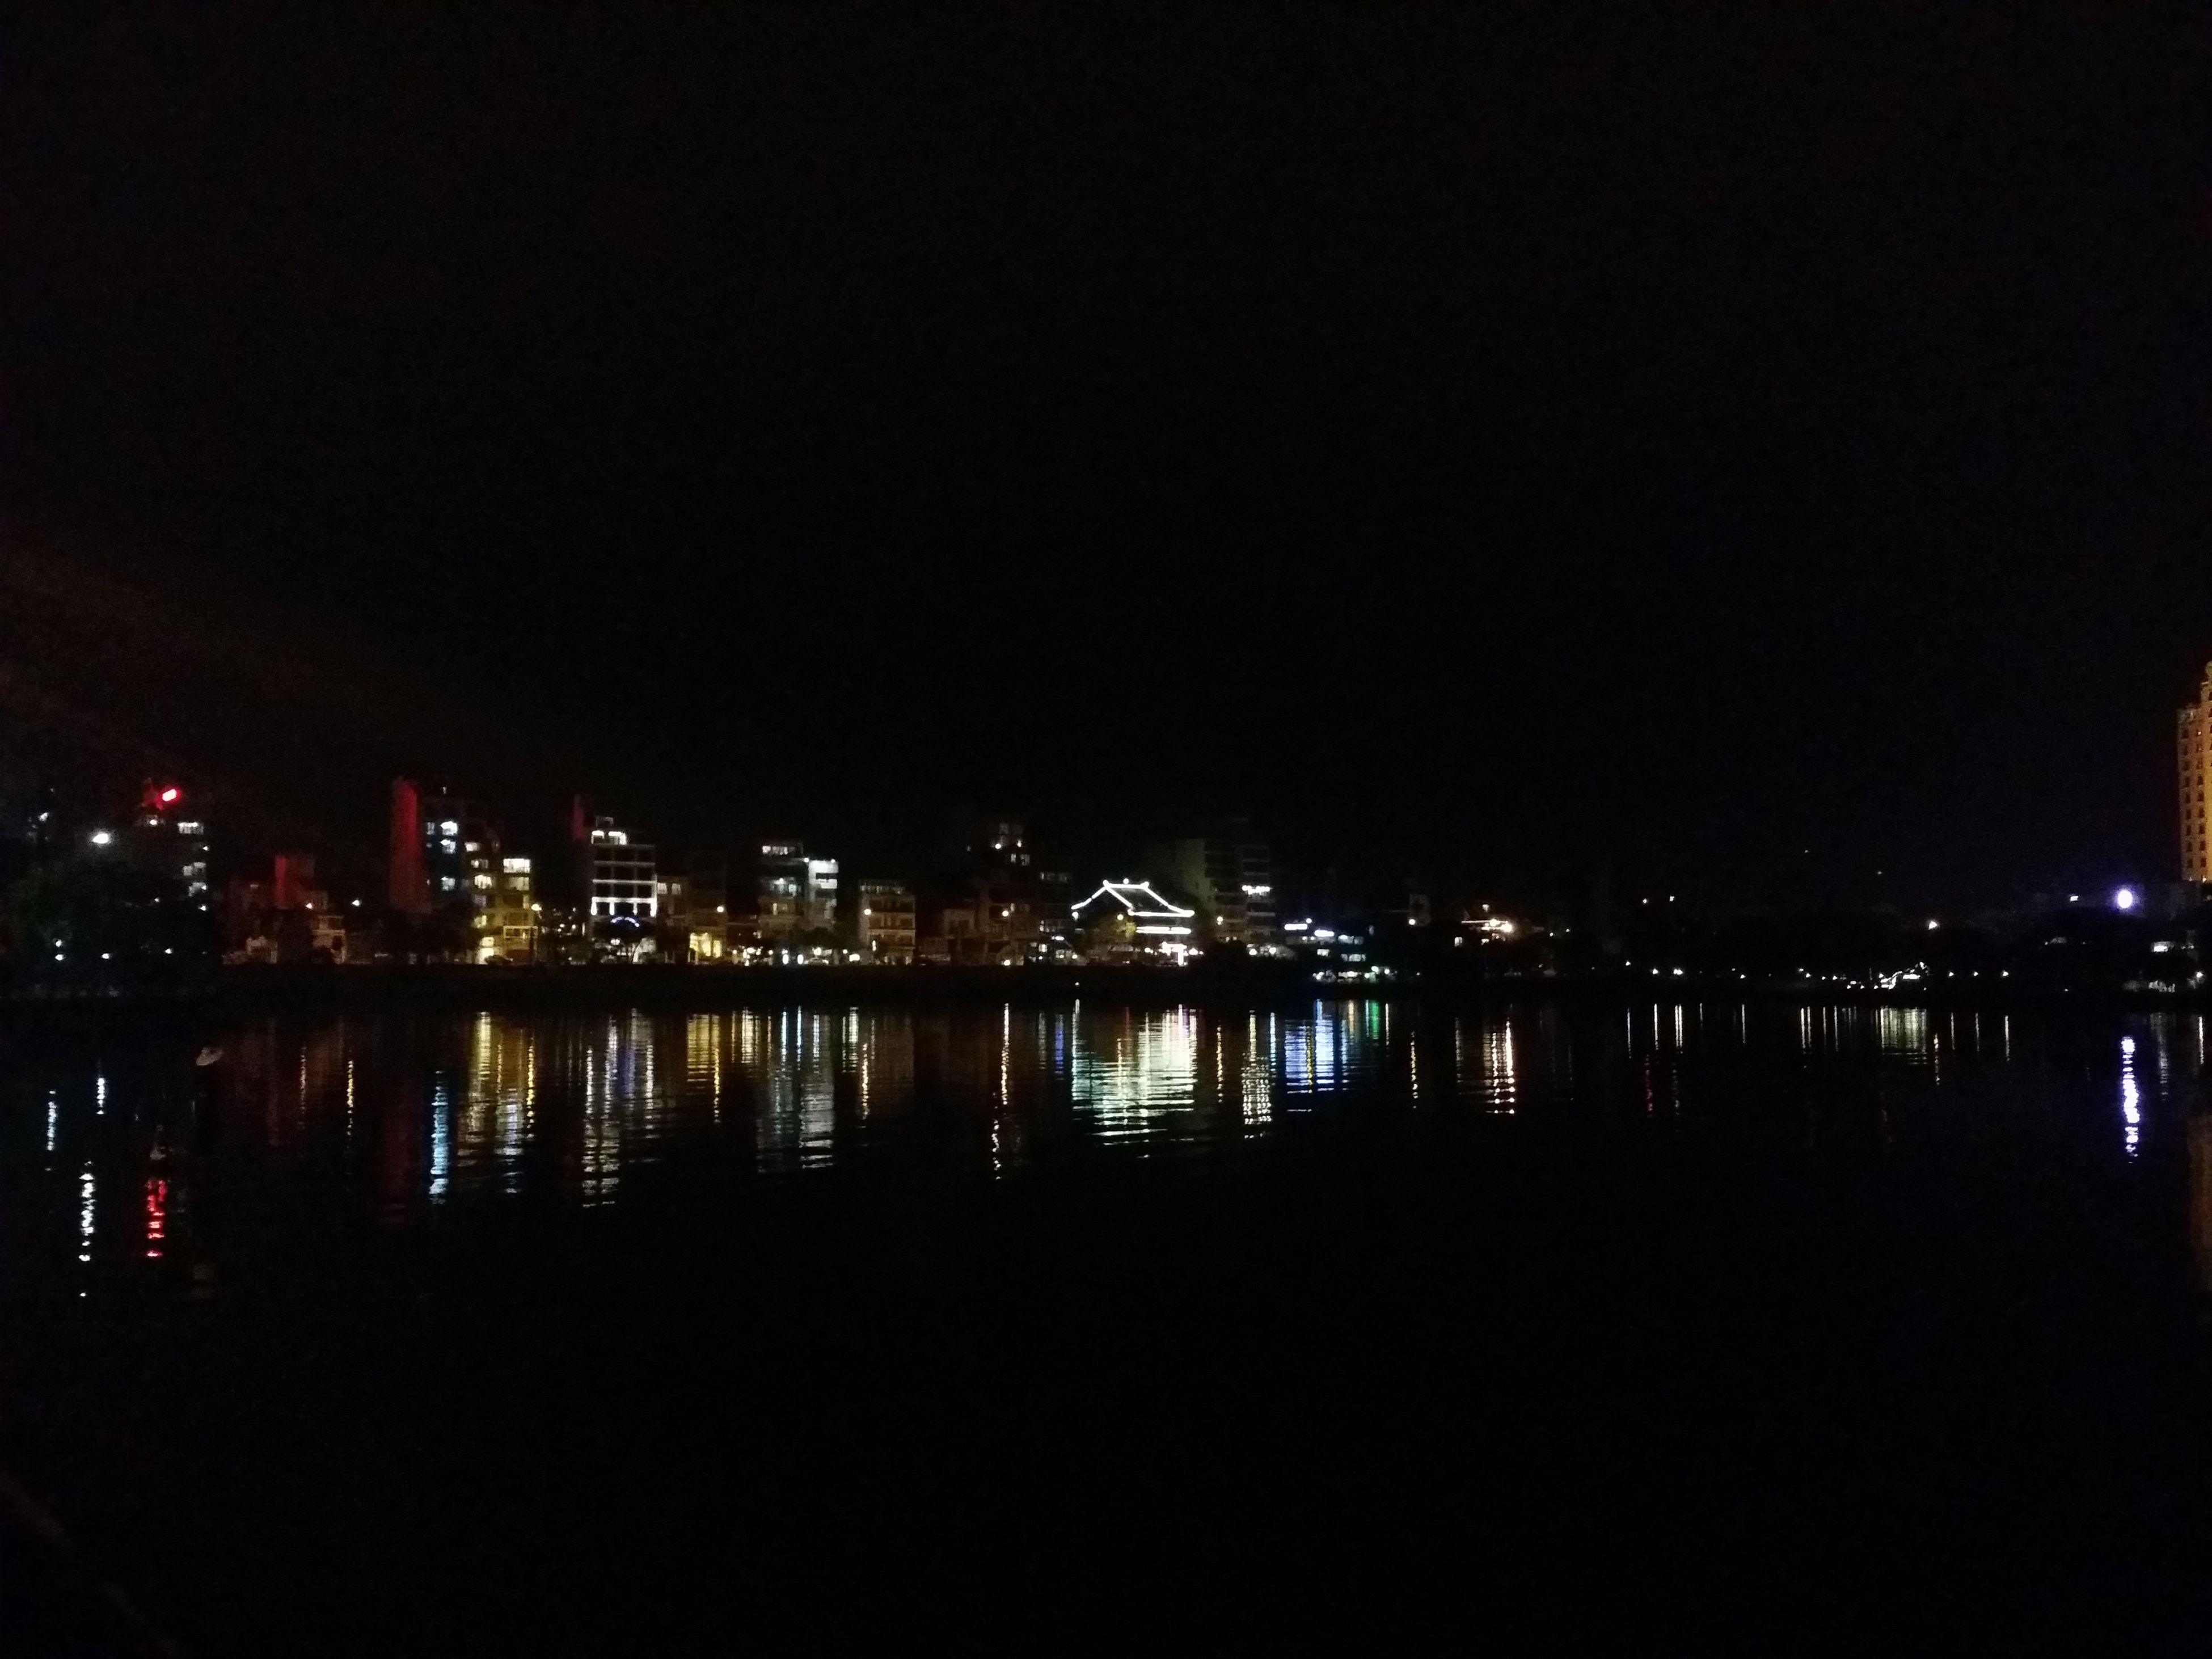 night, illuminated, water, reflection, built structure, architecture, river, waterfront, building exterior, city, copy space, clear sky, sea, dark, sky, lake, no people, outdoors, bridge - man made structure, tranquility